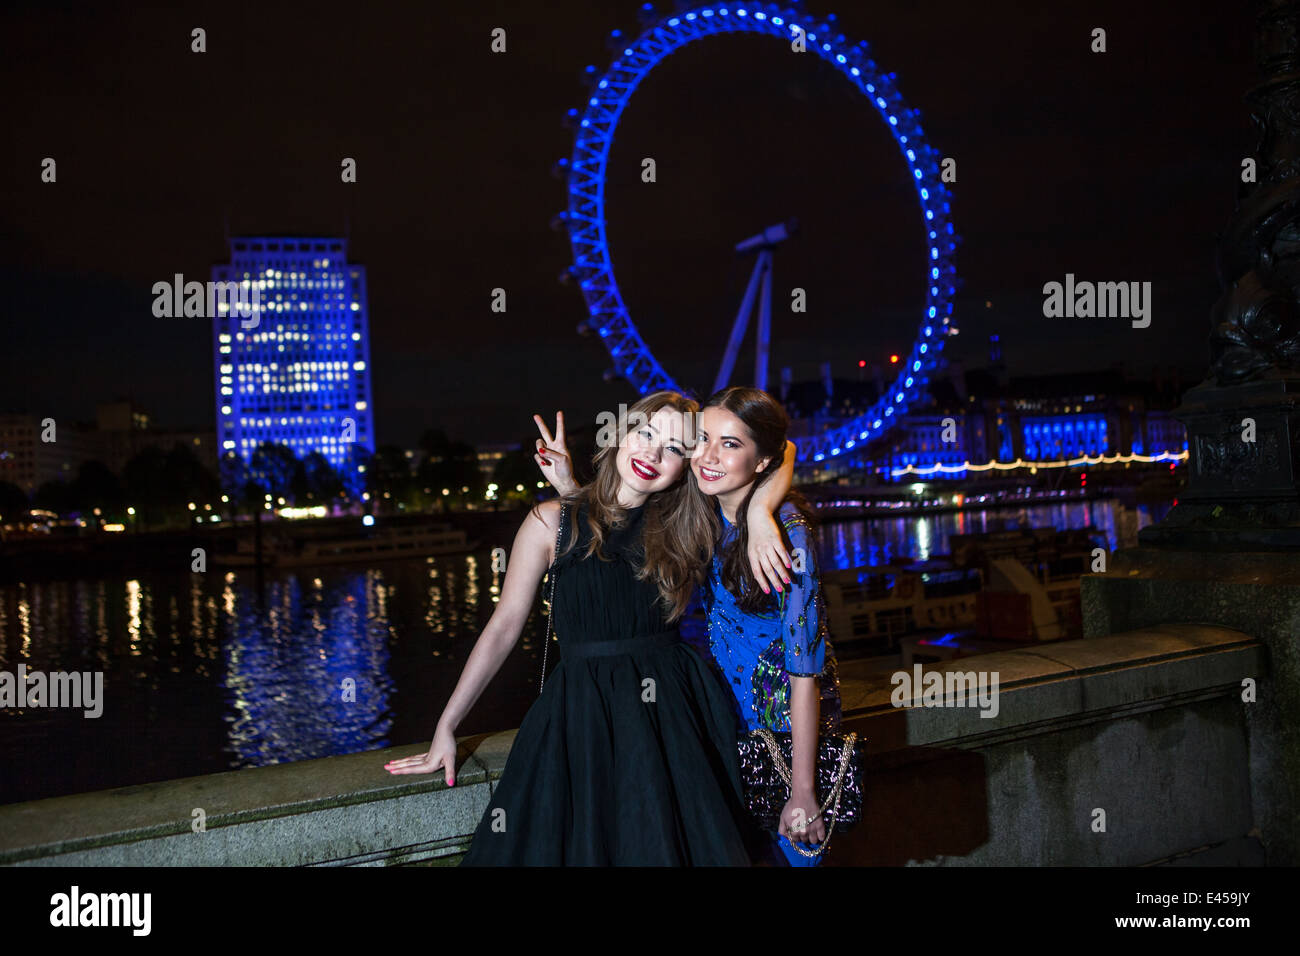 Portrait of two female friends posing with London Eye at night, London, UK - Stock Image